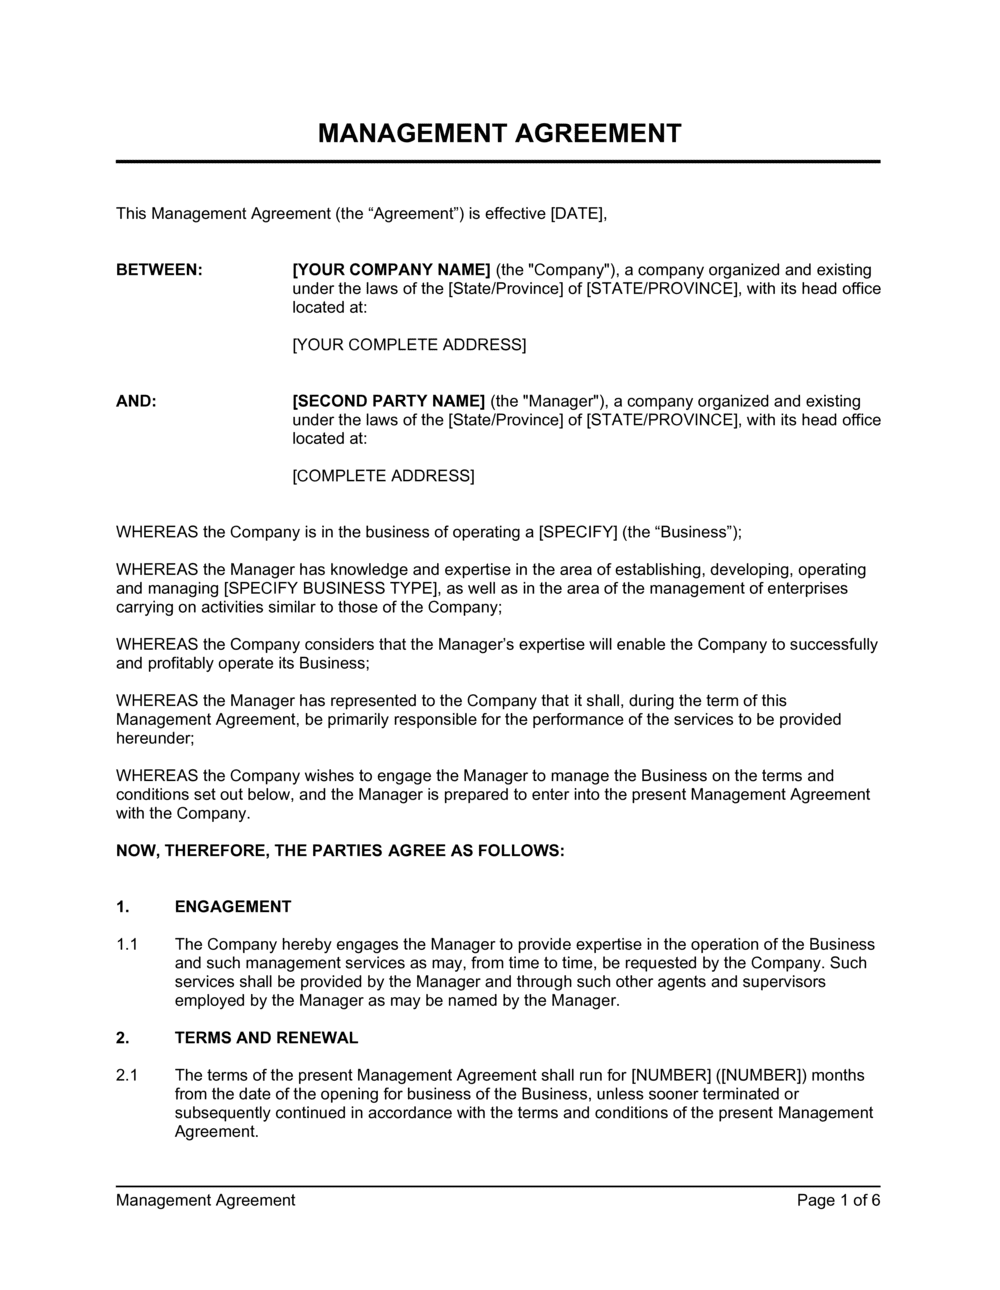 Business-in-a-Box's Management Agreement Template